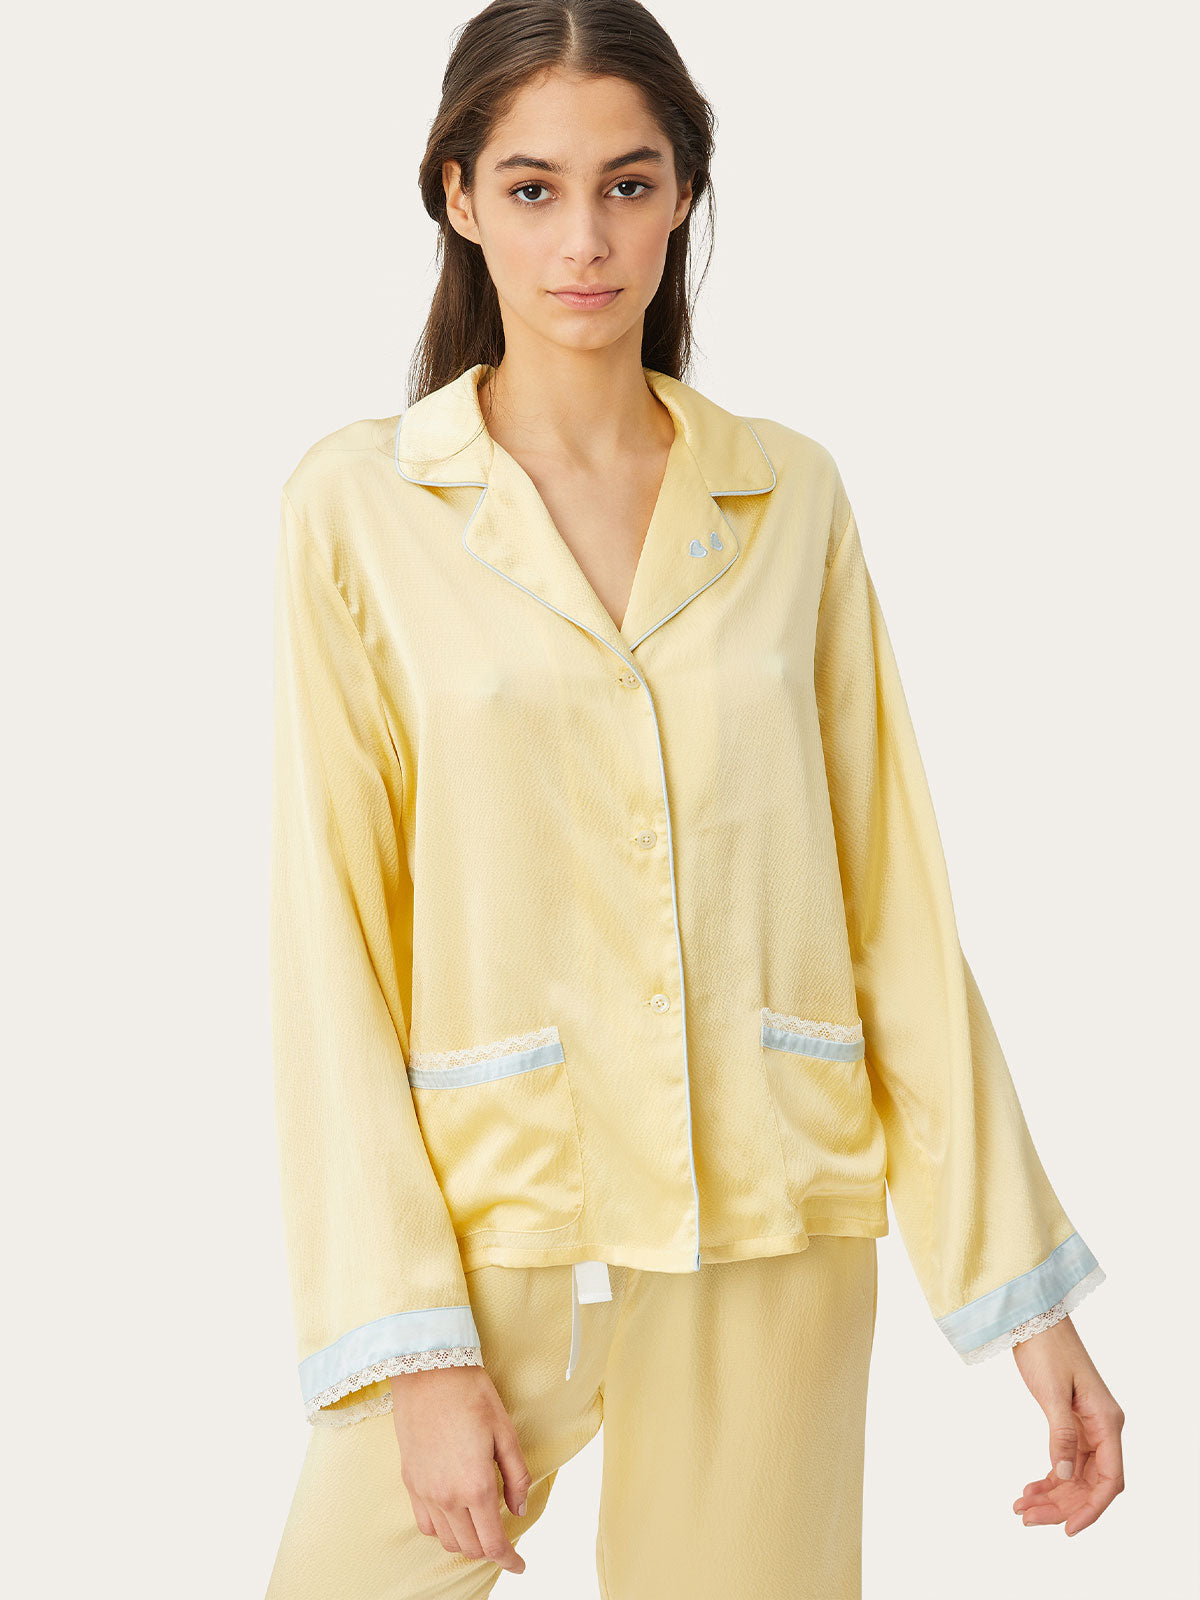 Jane Top in Custard By Morgan Lane